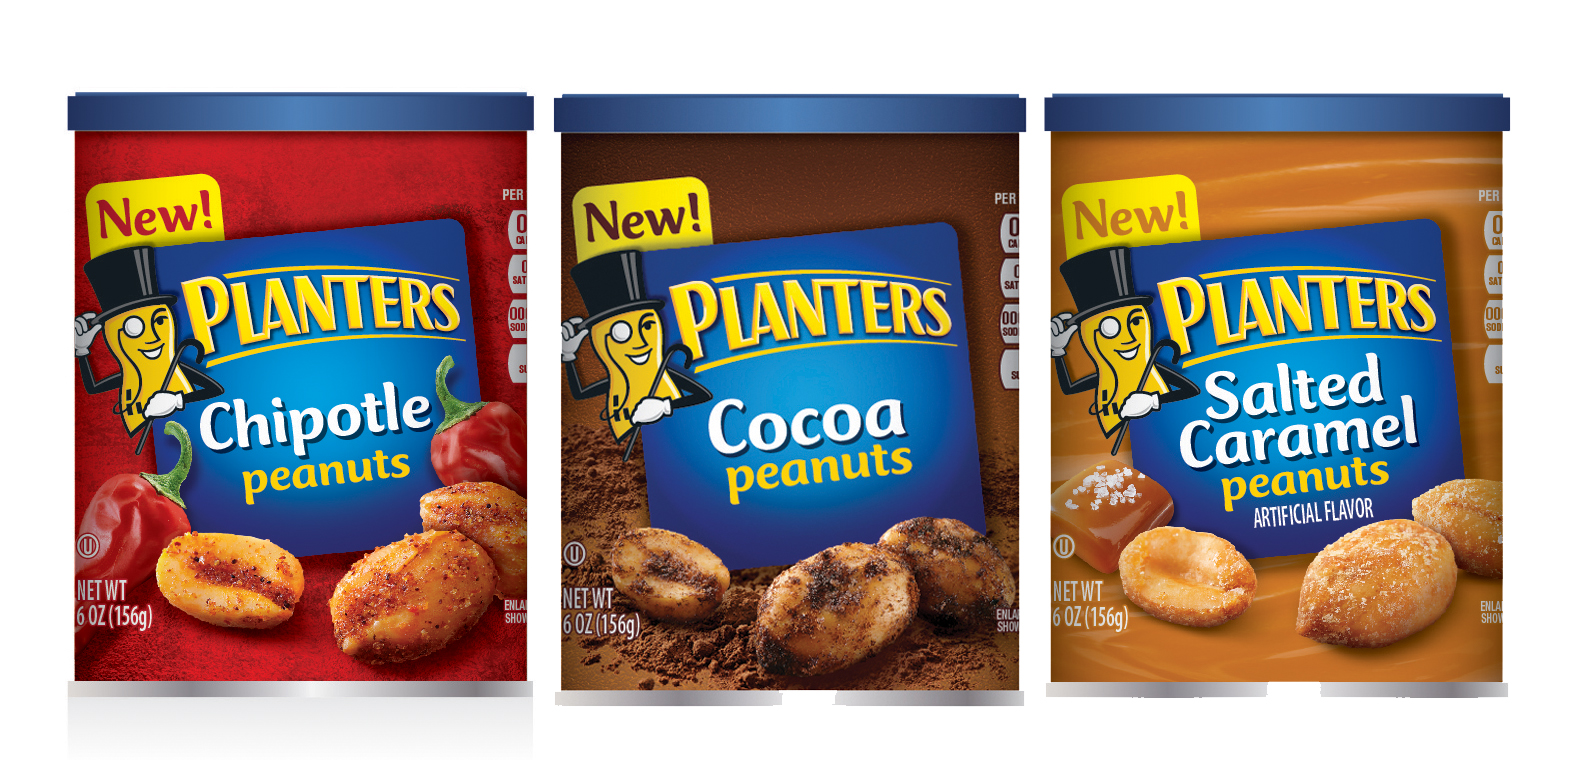 Planters Peanut Flavors  - The flavor cues were created through the use of textured background and photo real elements shown with heavily seasoned product photography.